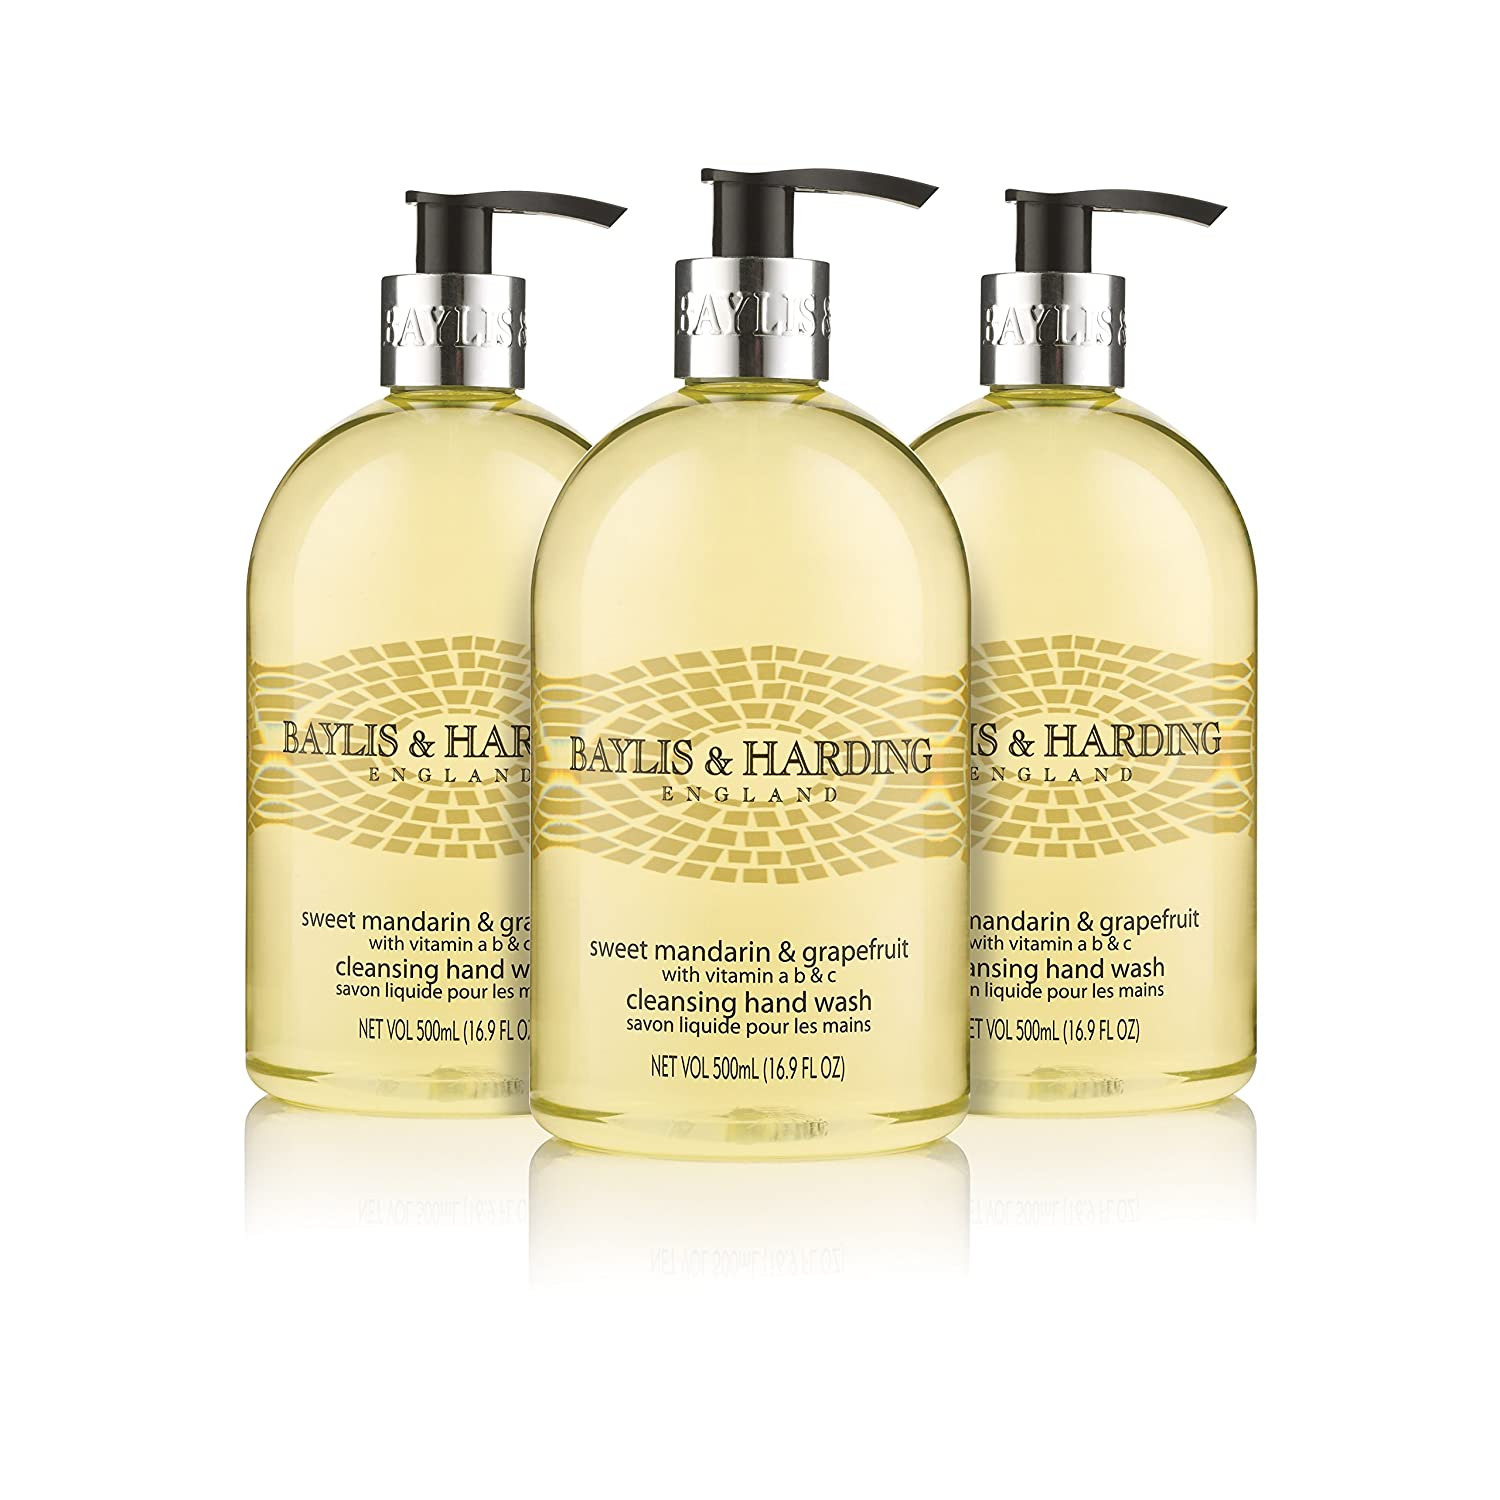 Baylis & Harding Hand Wash, Black Pepper and Ginseng, 500 ml, Pack of 3 BMHWBP